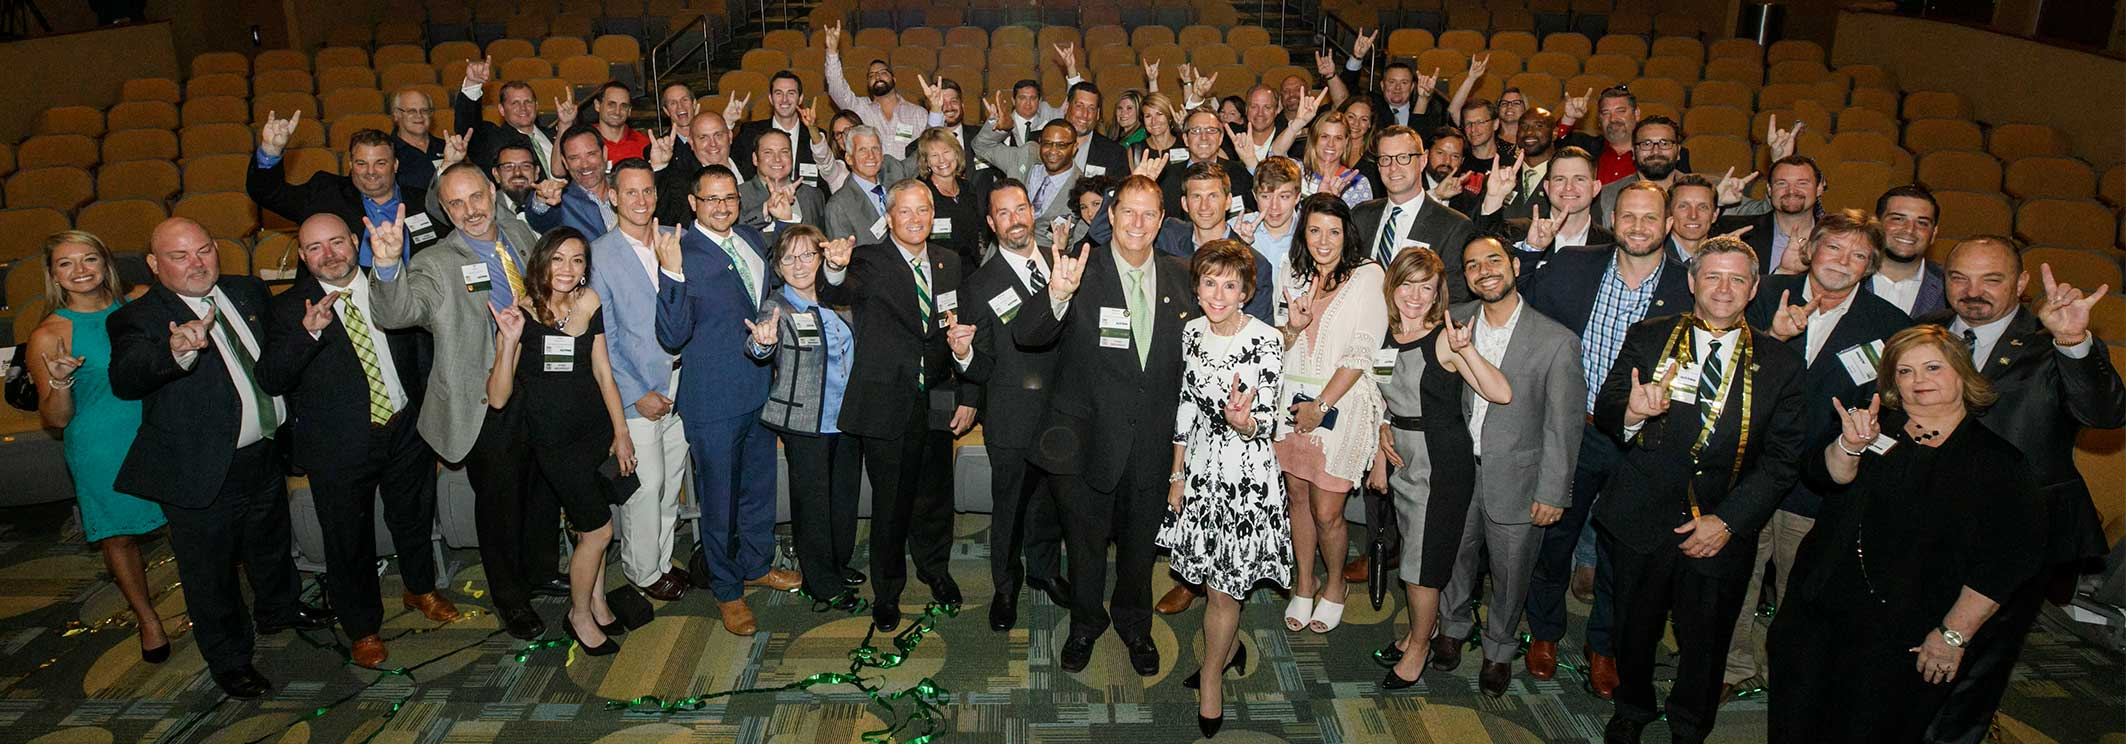 Congratulations to the class of 2017 USF Fast 56!